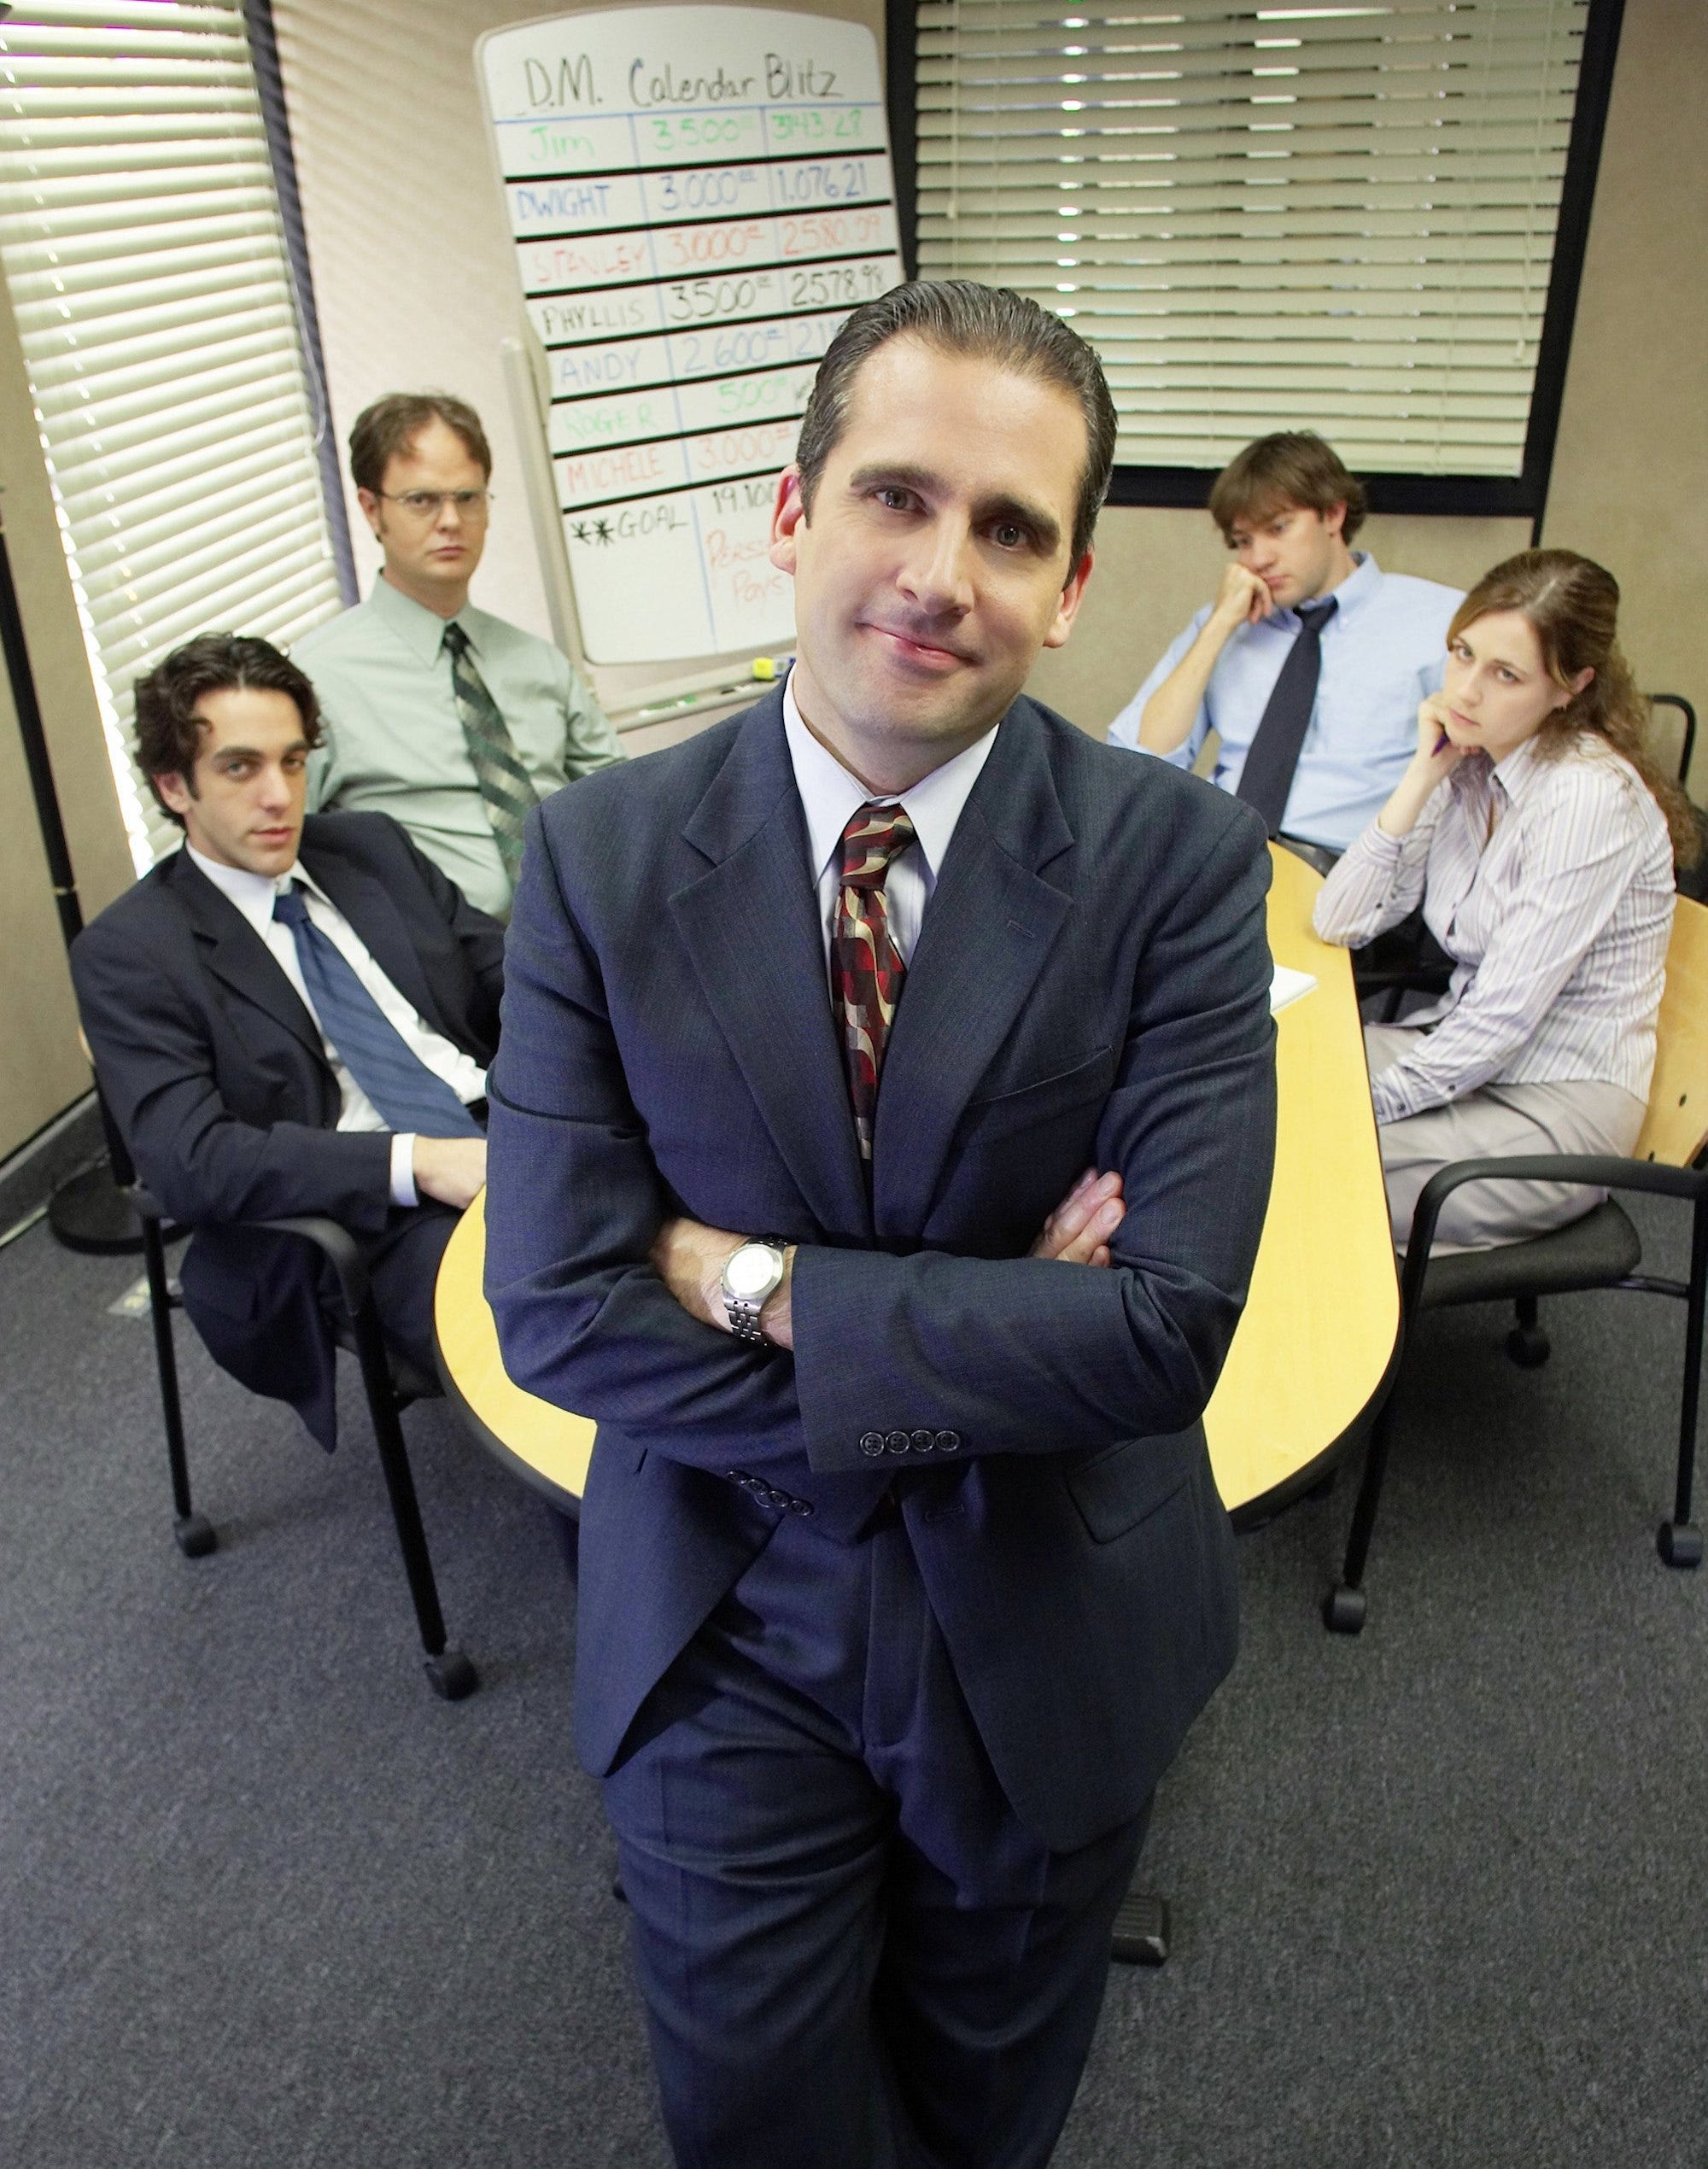 Everybody In The Conference Room: The Office Is Leaving Netflix